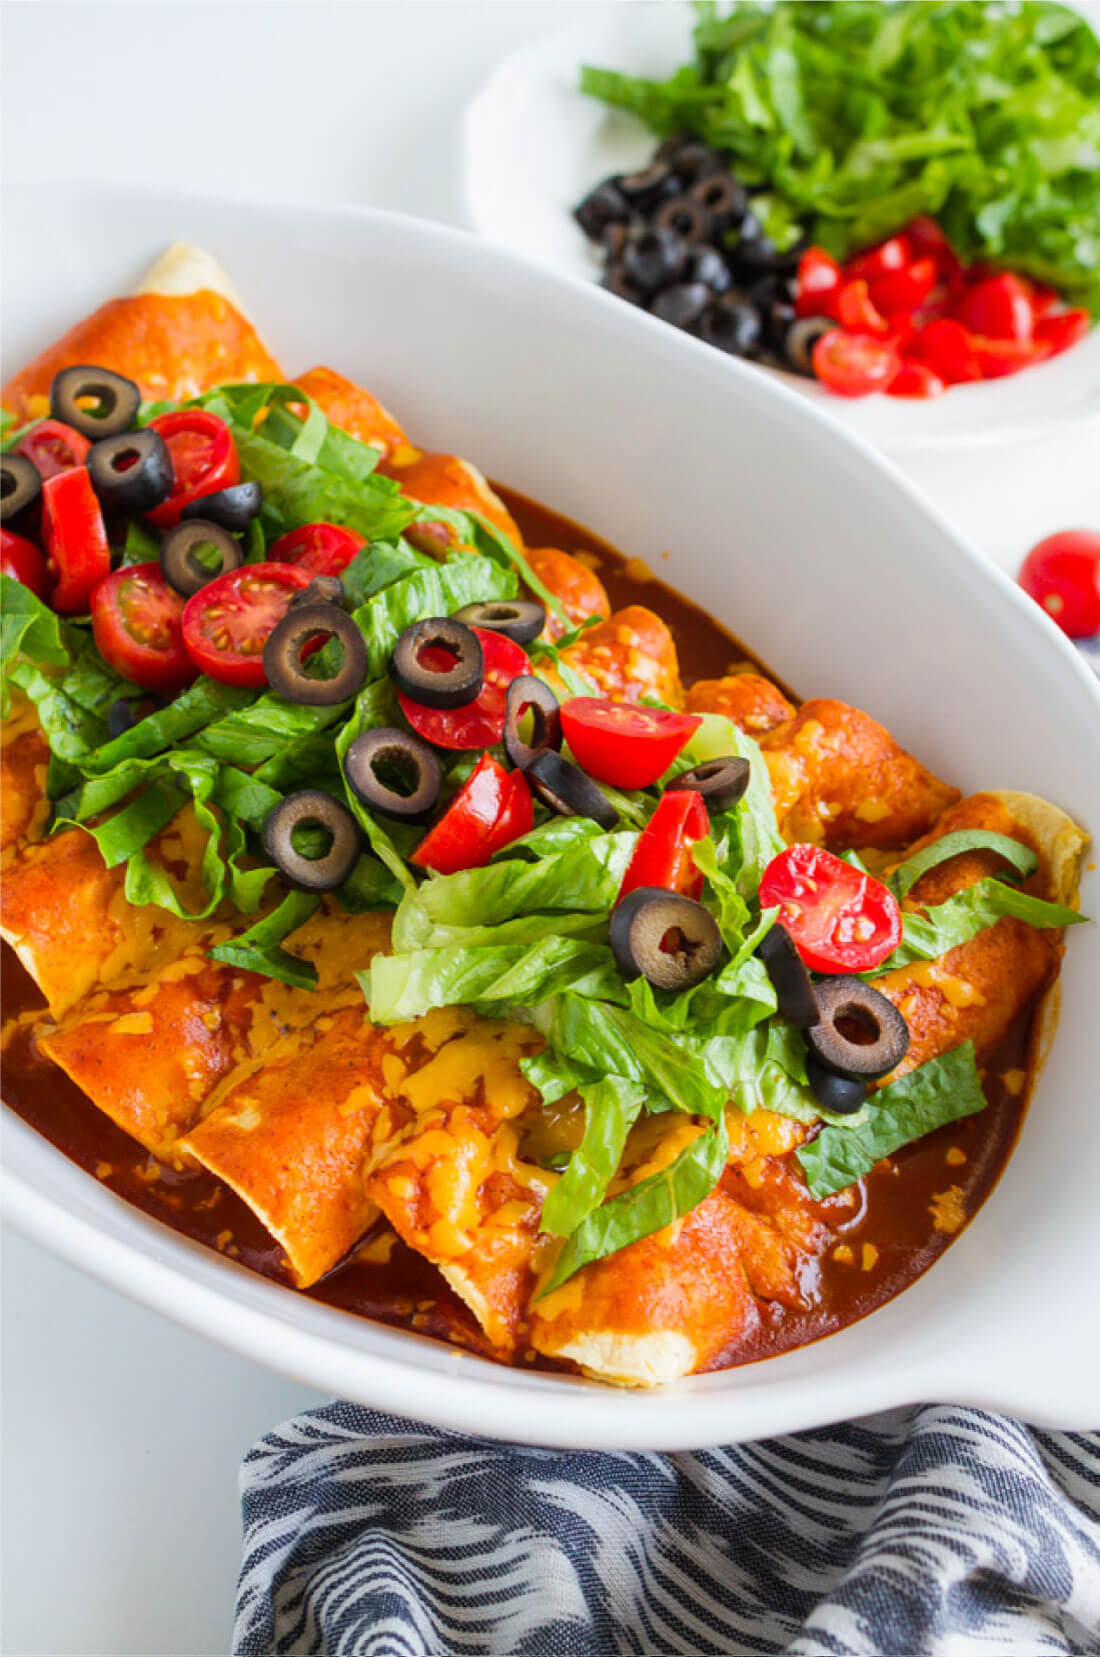 Easy Homemade Beef Enchiladas - a yummy main dish recipe that your whole family will love from www.thirtyhandmadedays.com